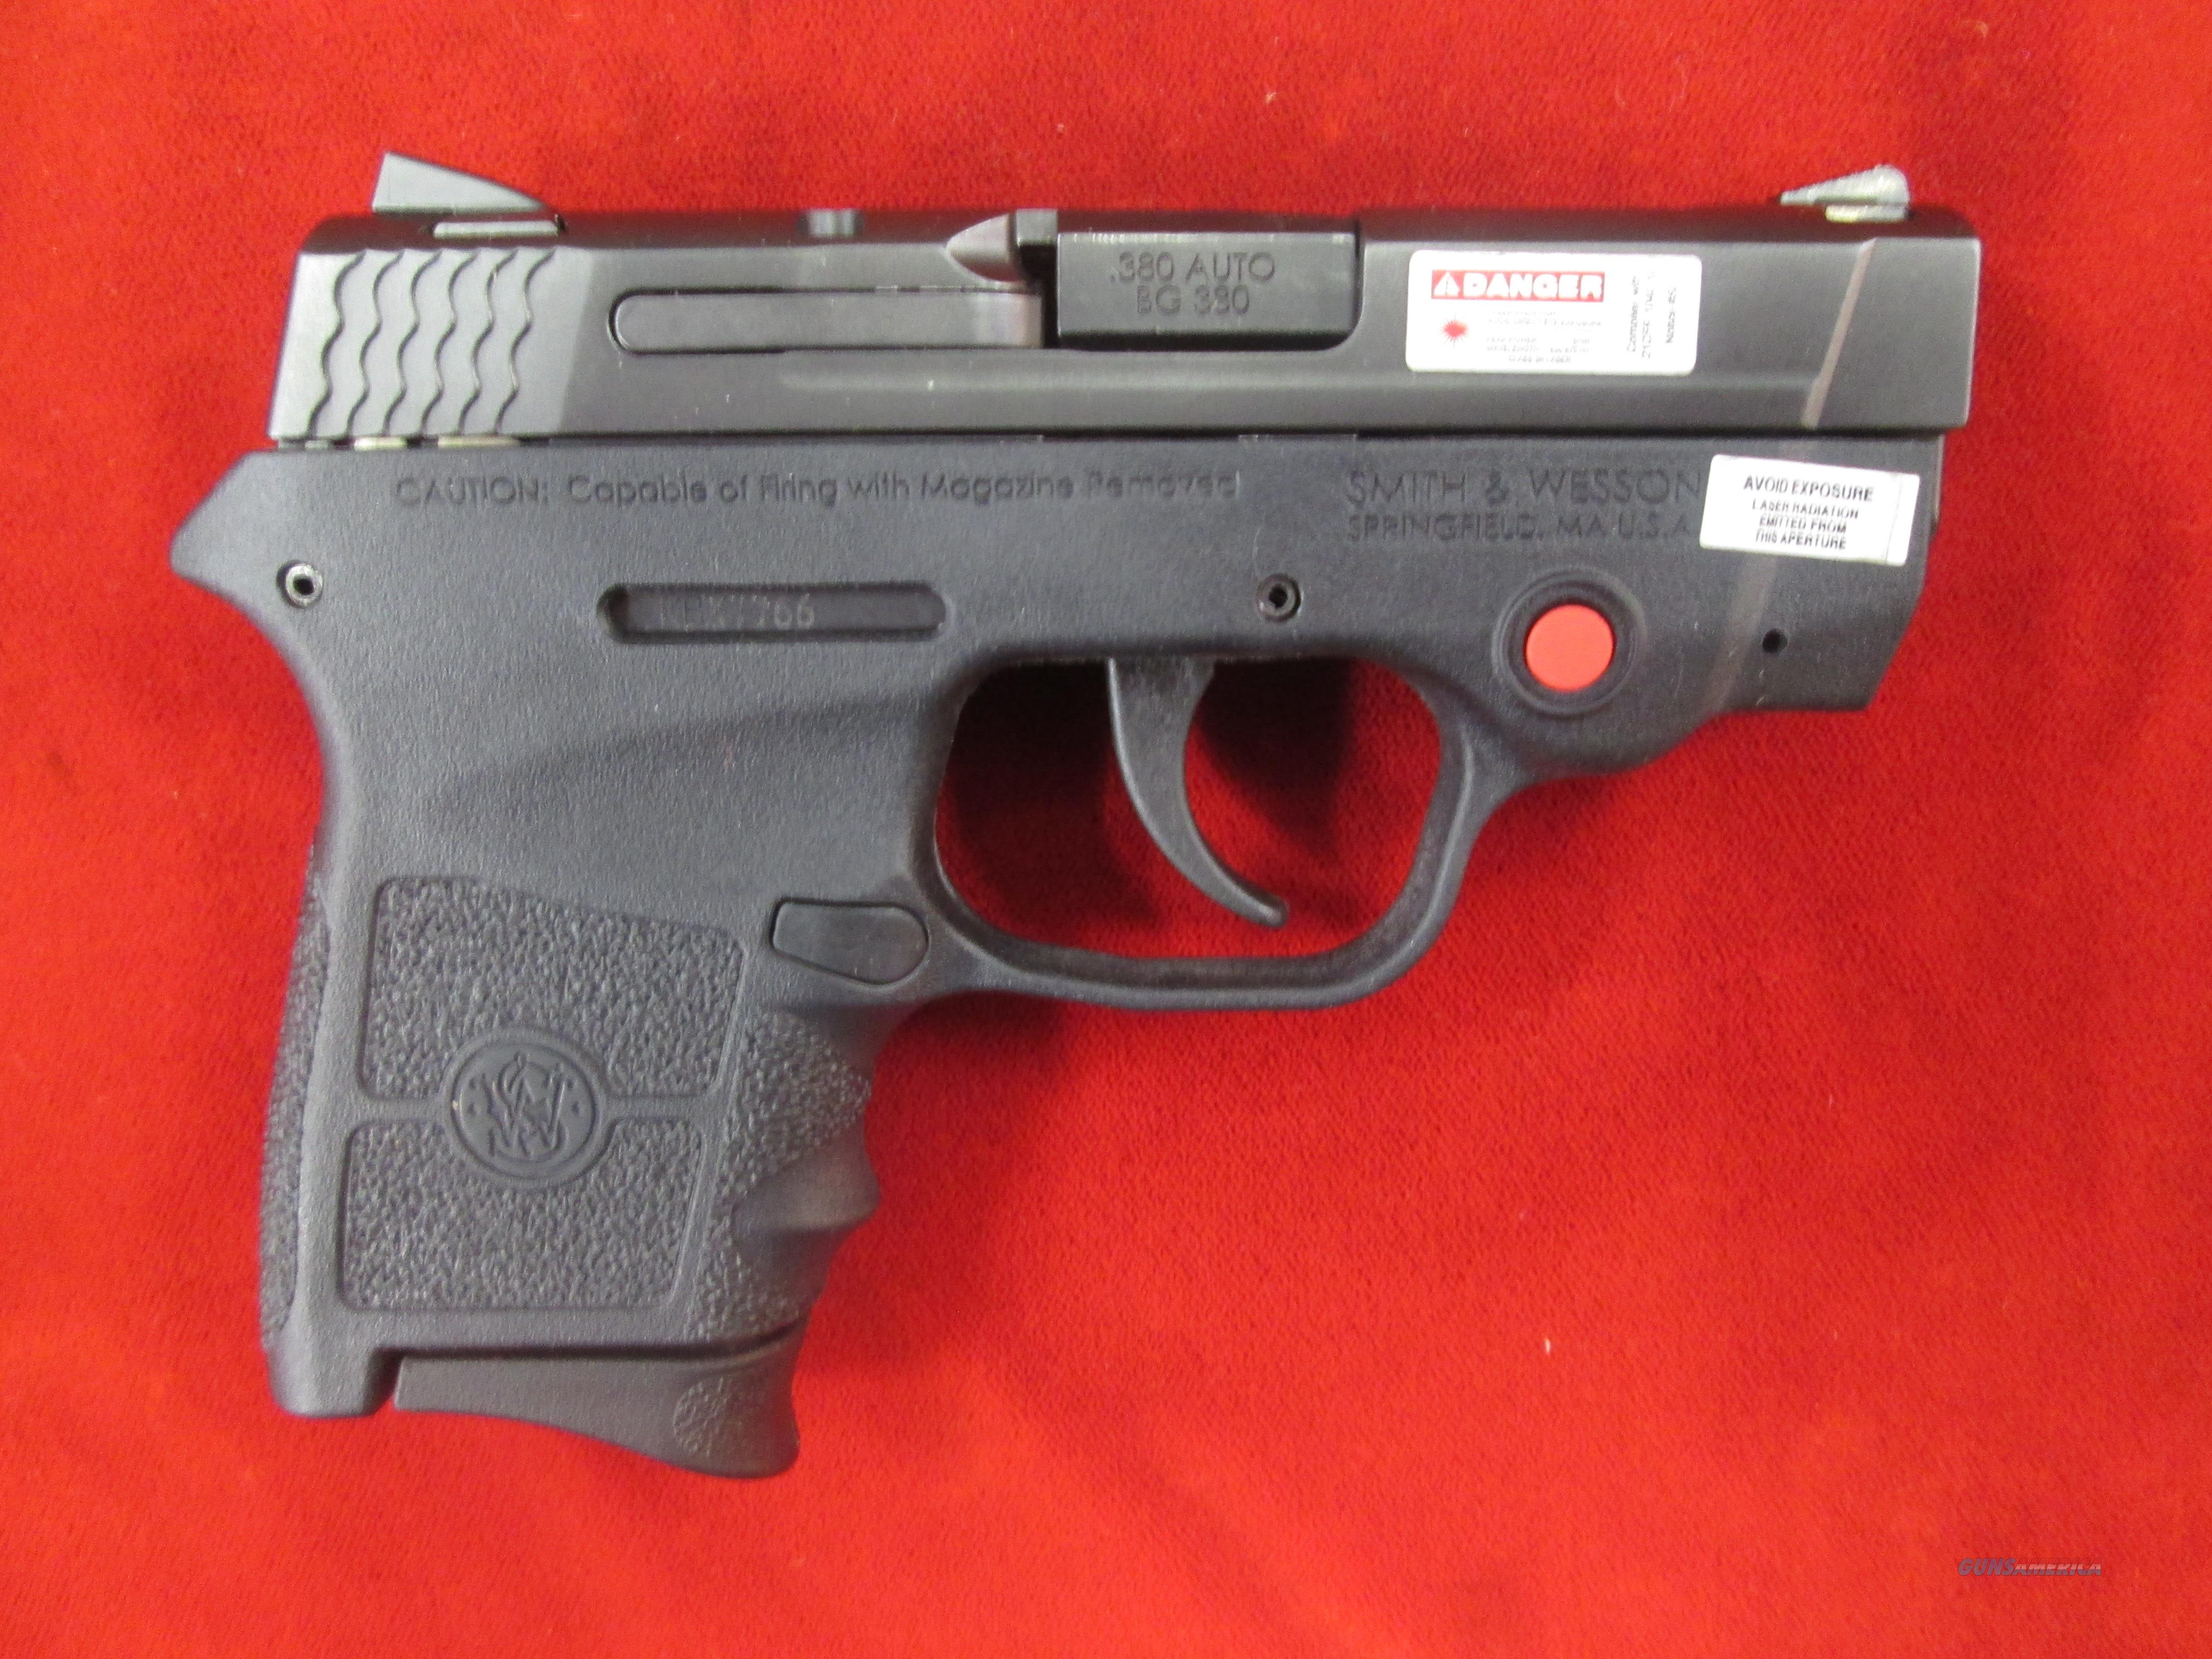 SMITH AND WESSON BODYGUARD W/ CRIMSON TRACE LASER 380CAL USED  Guns > Pistols > Smith & Wesson Pistols - Autos > Polymer Frame